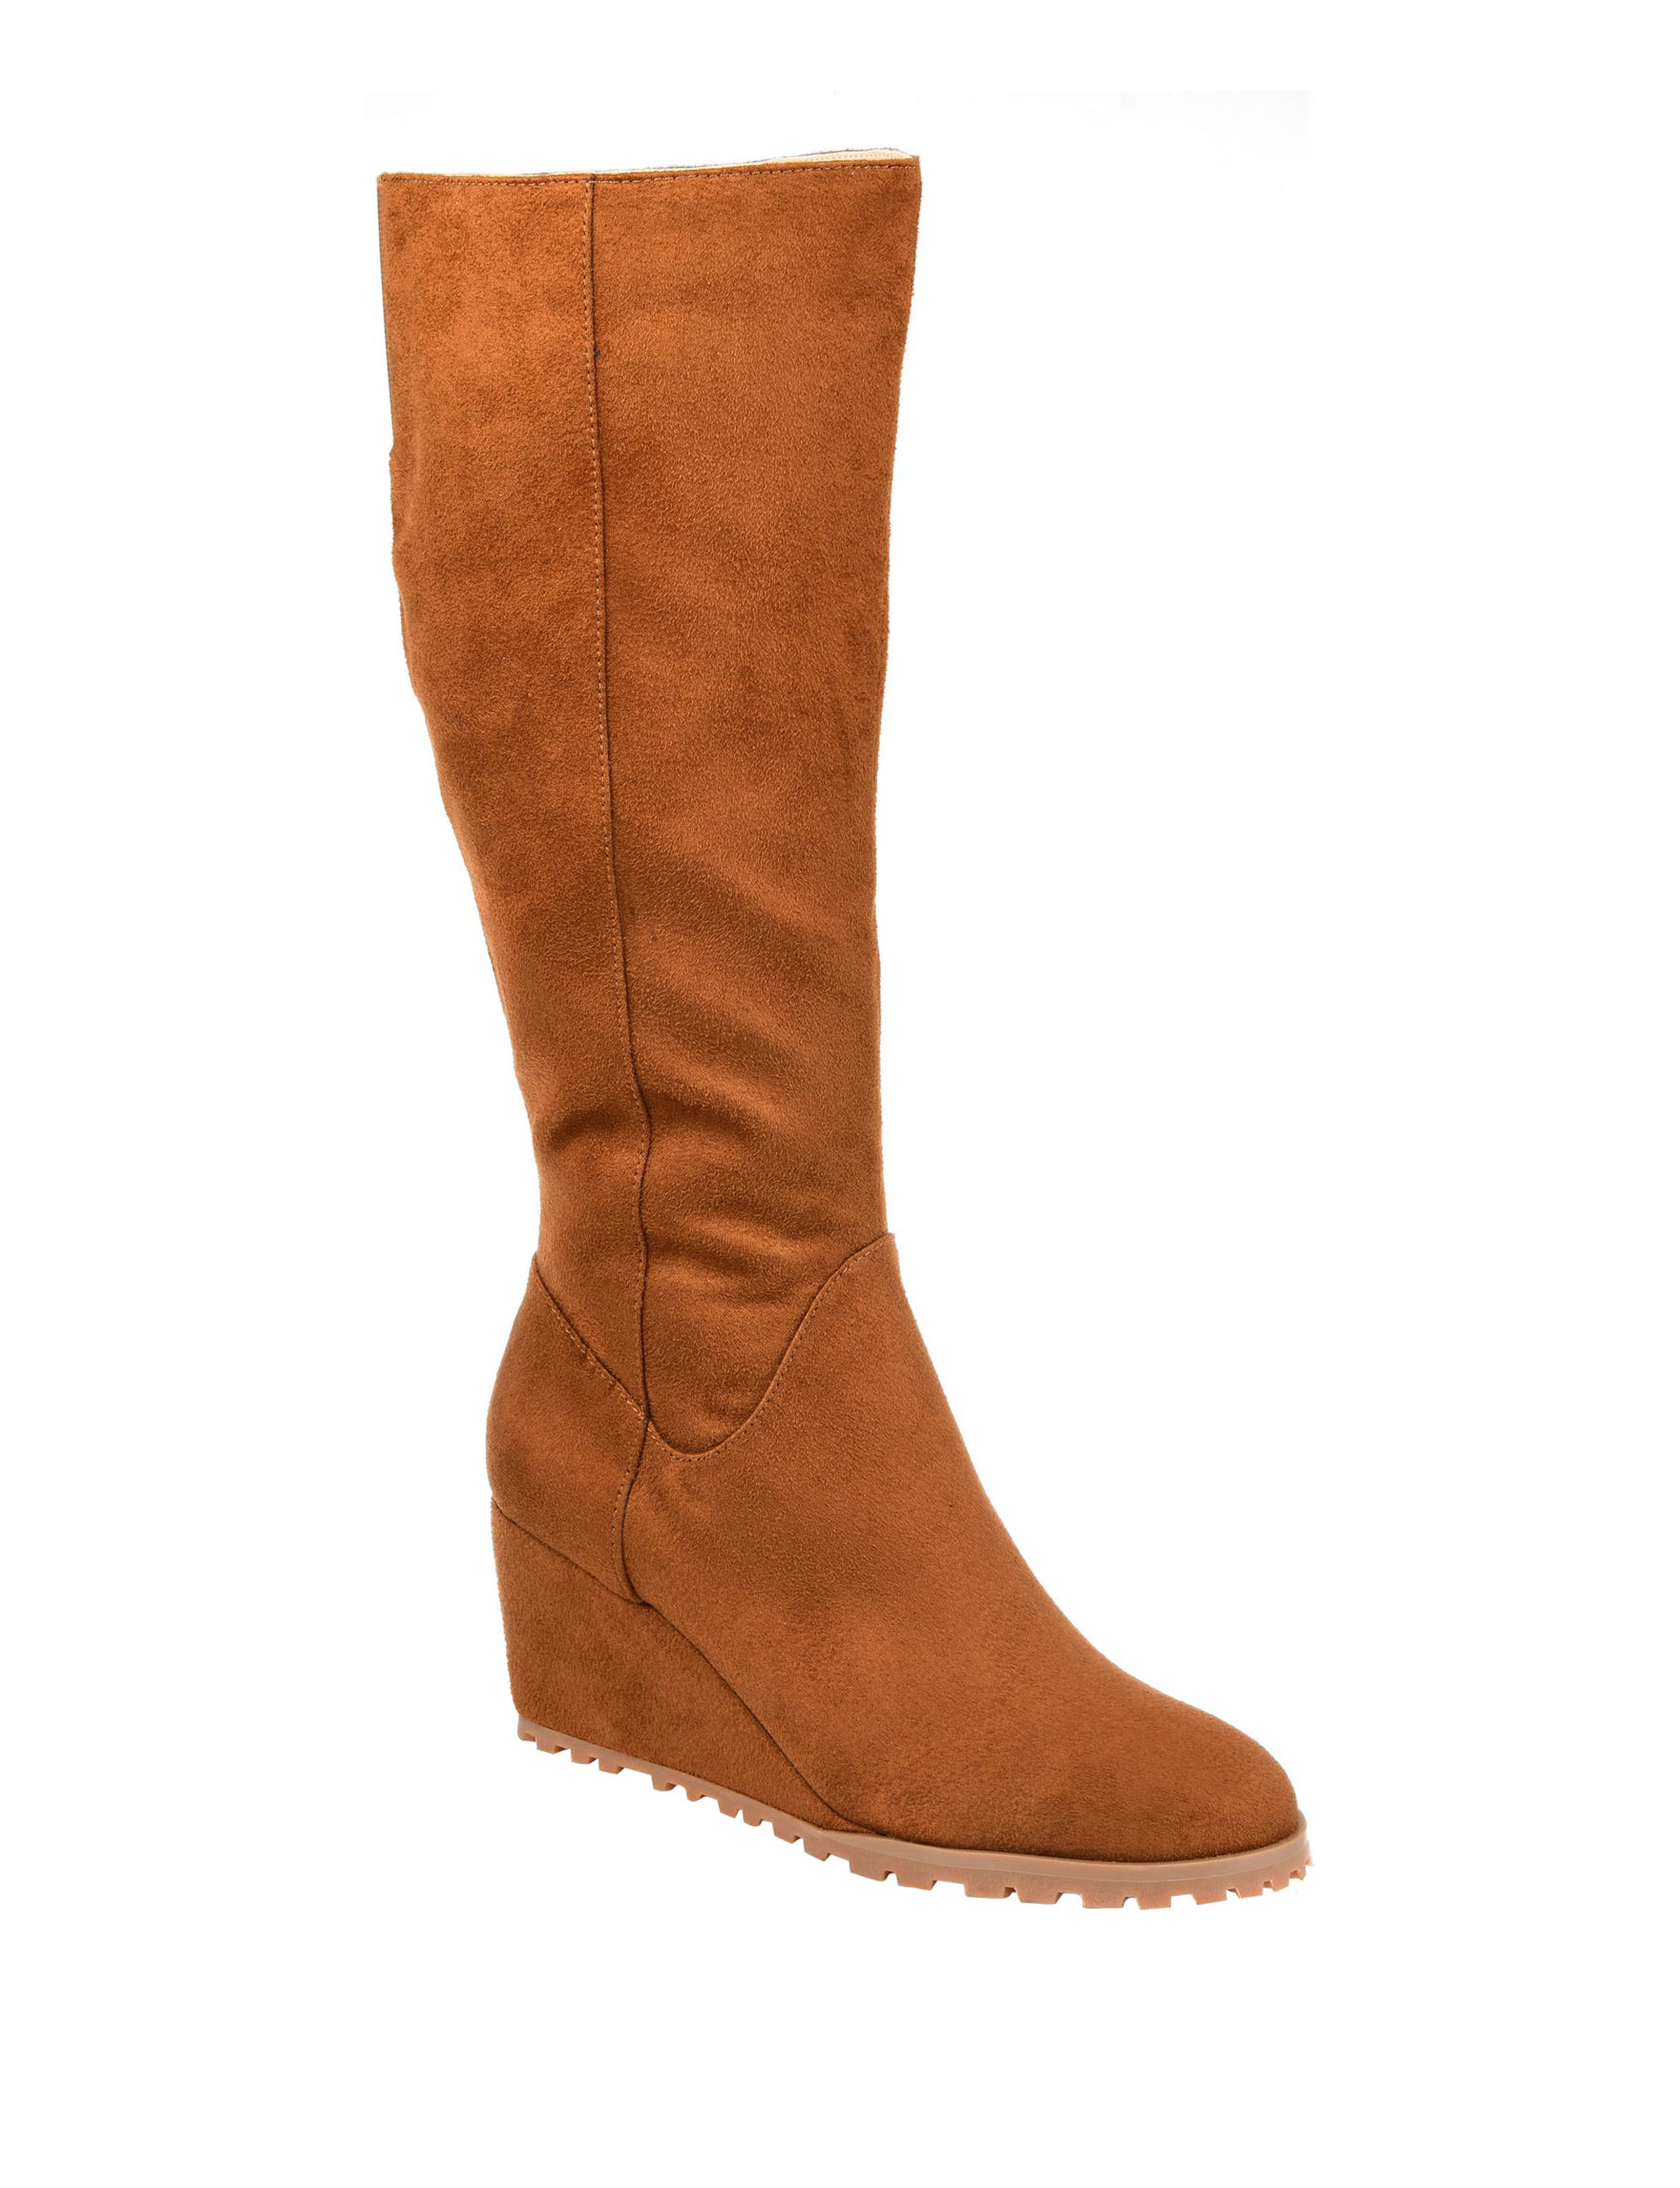 0af1f2843dd8f Journee Collection Women's Parker Extra Wide Calf Comfort Wedge Boots